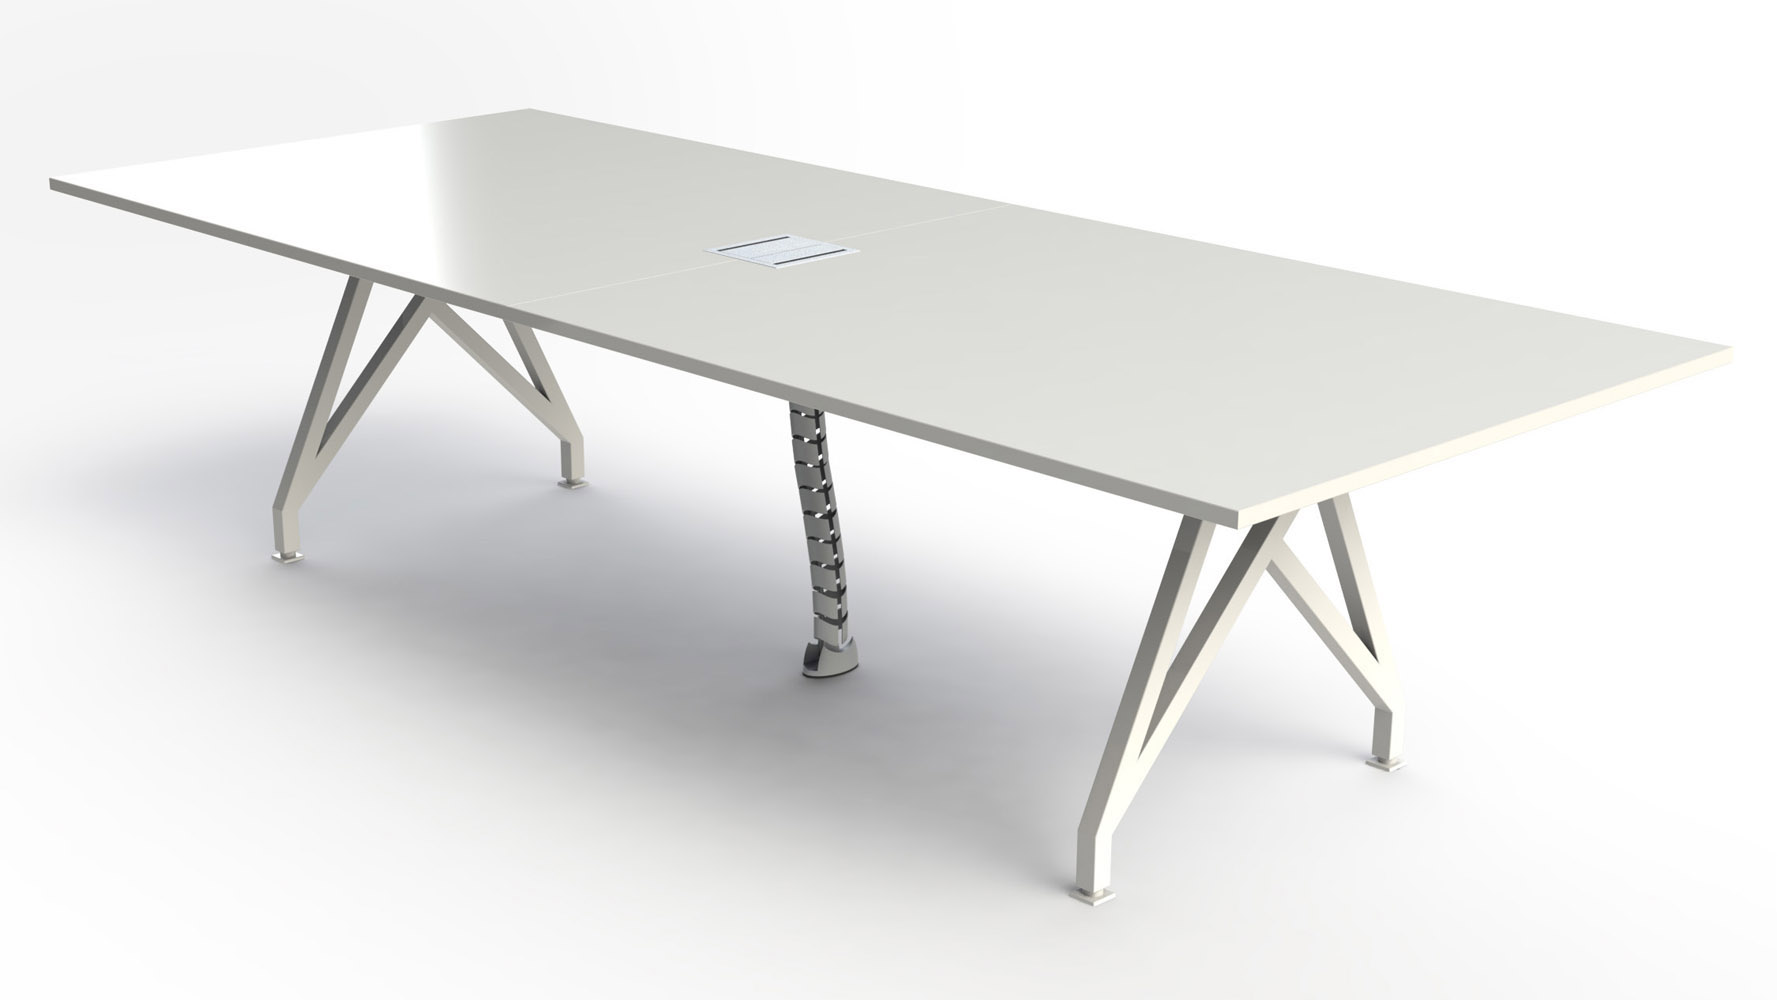 THINK TANK Conference Table Ft Zuri Furniture - Contemporary modern conference table